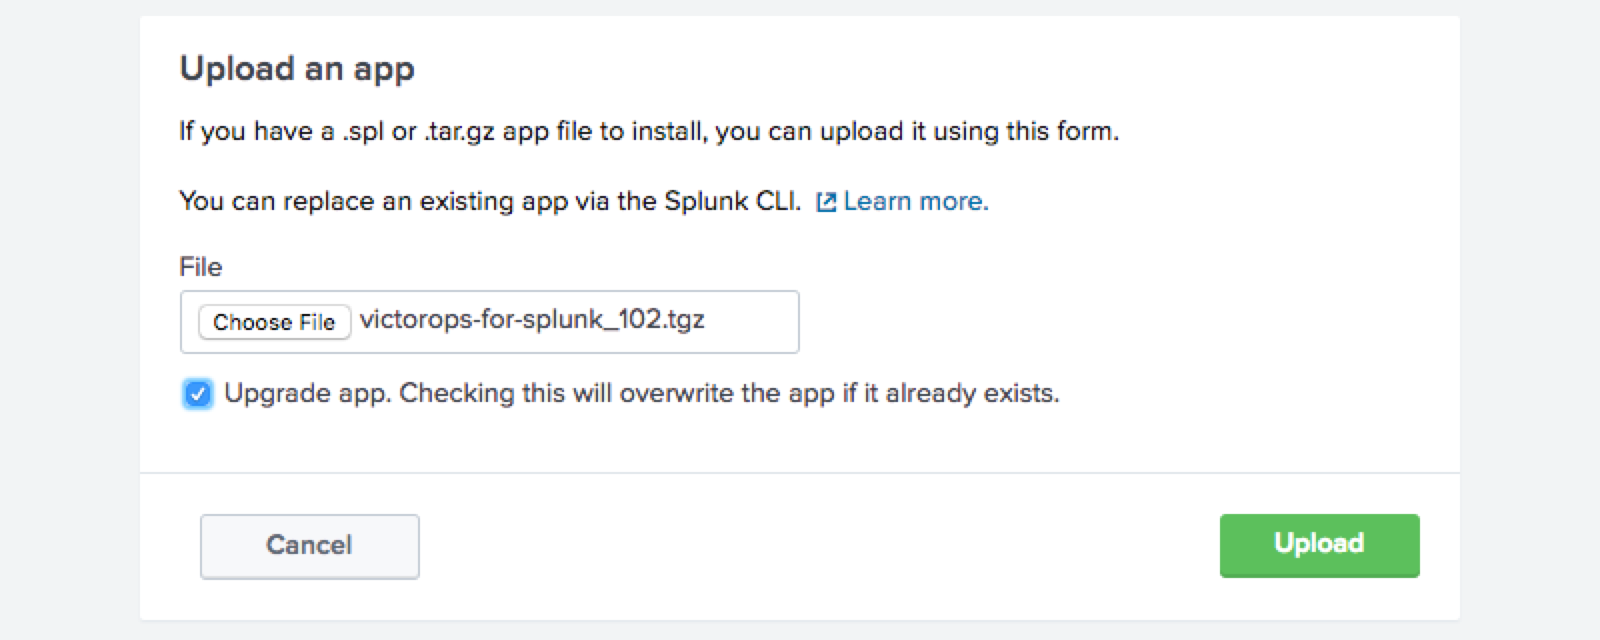 upload victorops for splunk file